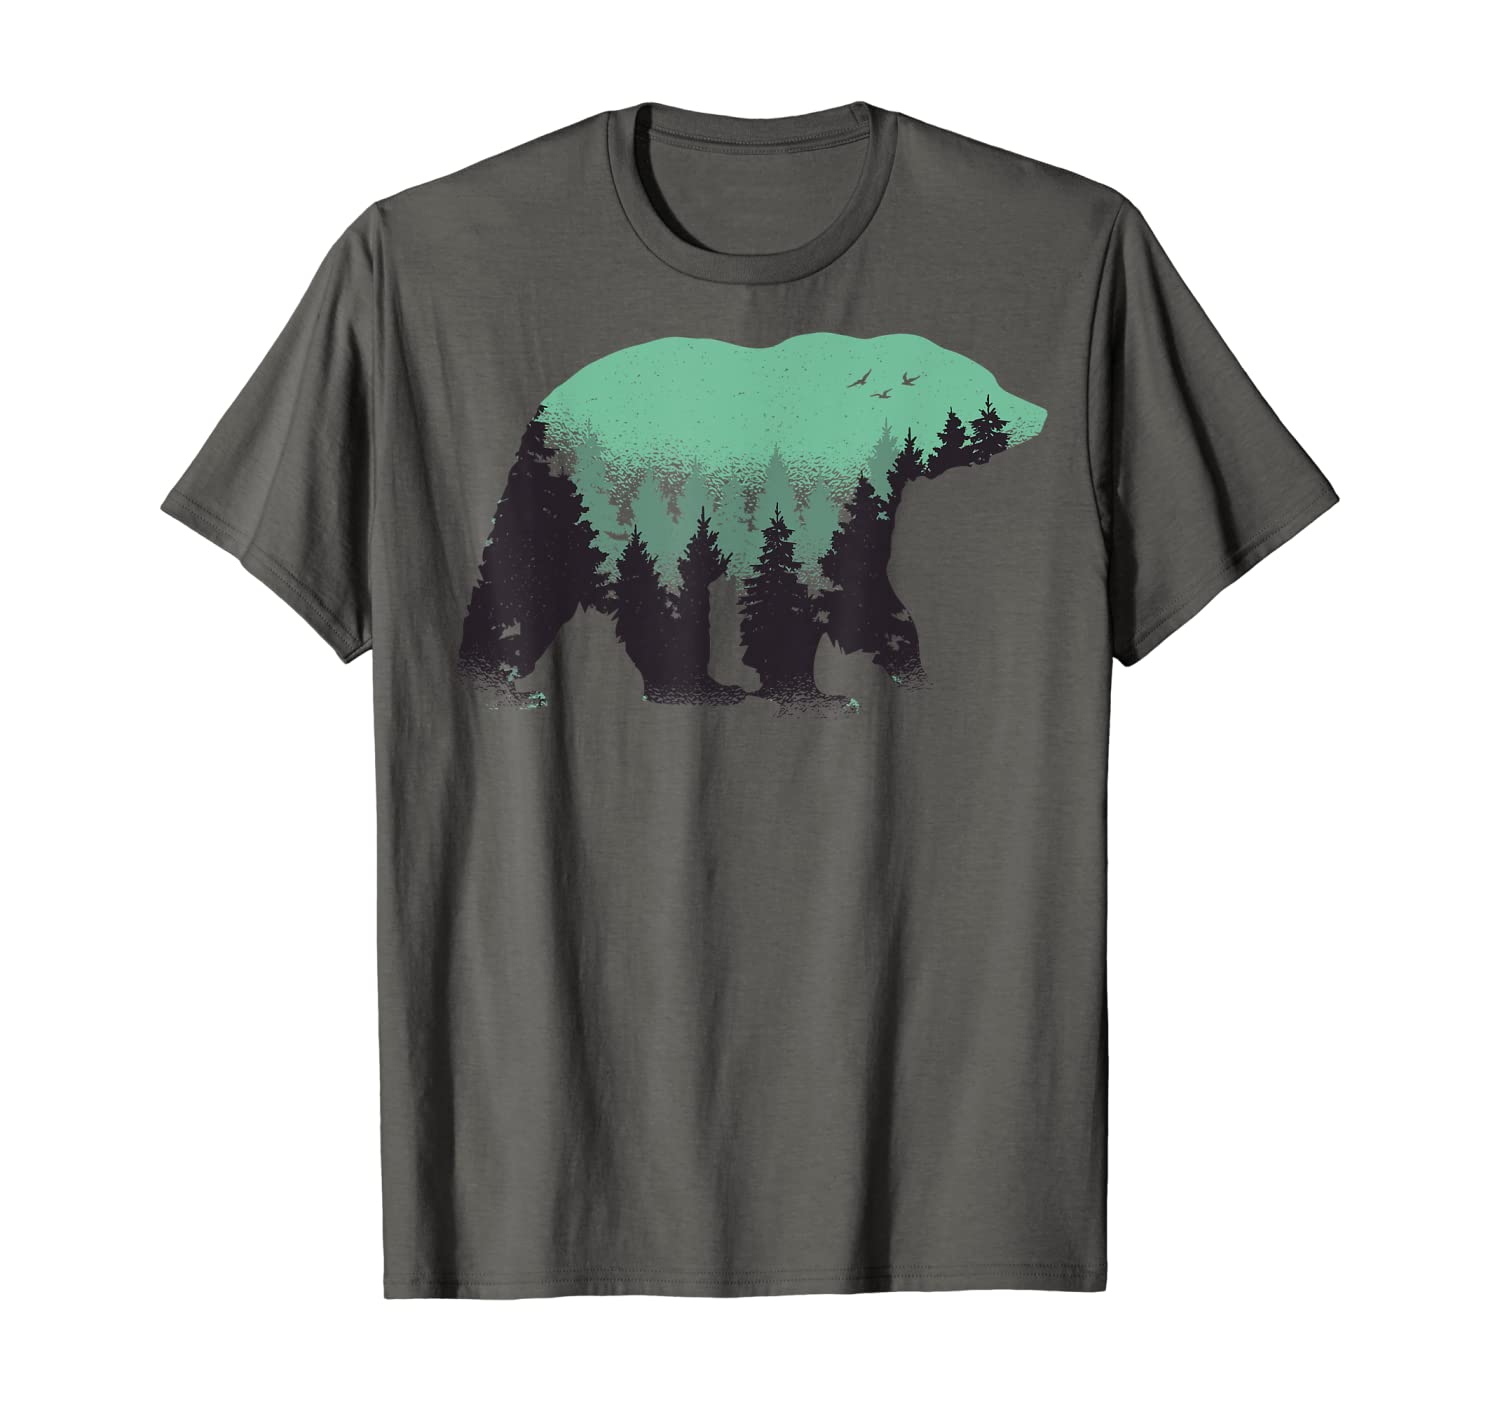 Bear Camping, Nature and Hiking T-Shirt with Forest T-Shirt